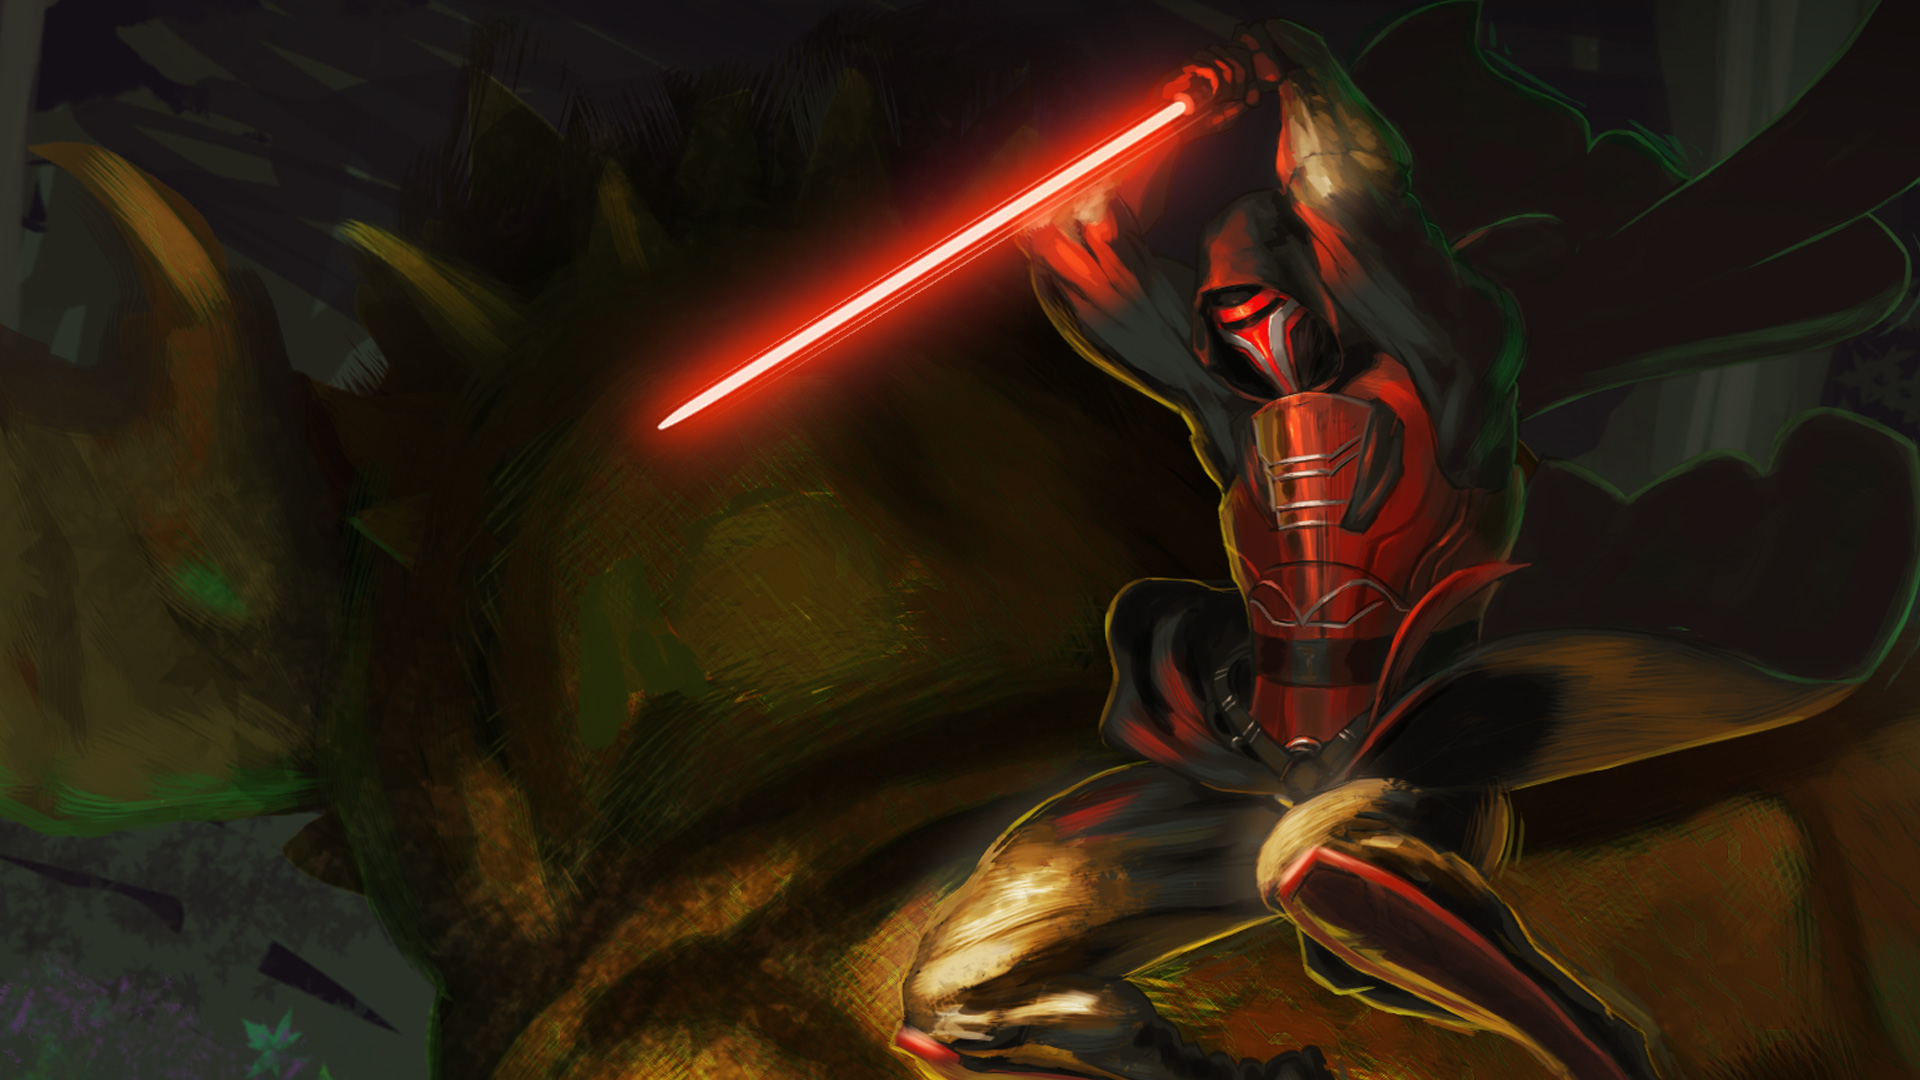 2048x1152 Revan With Lightsaber Star Wars 2048x1152 Resolution Hd 4k Wallpapers Images Backgrounds Photos And Pictures